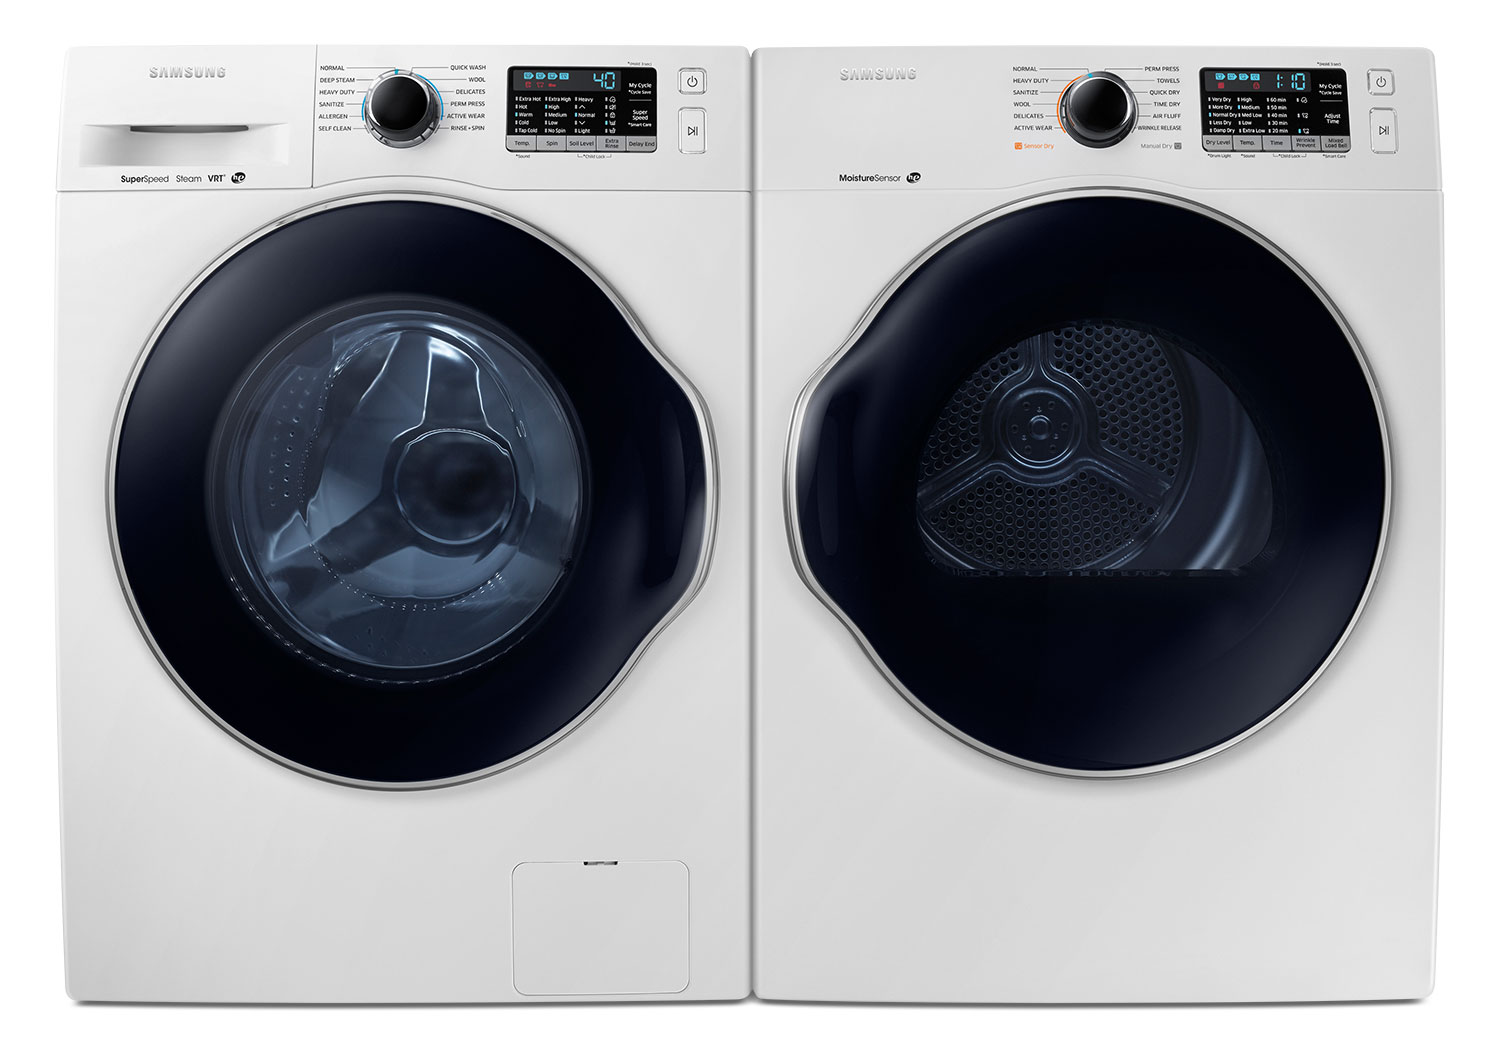 Compact Front Load Washers Samsung Compact 26 Cu Ft Front Load Washer And 40 Cu Ft